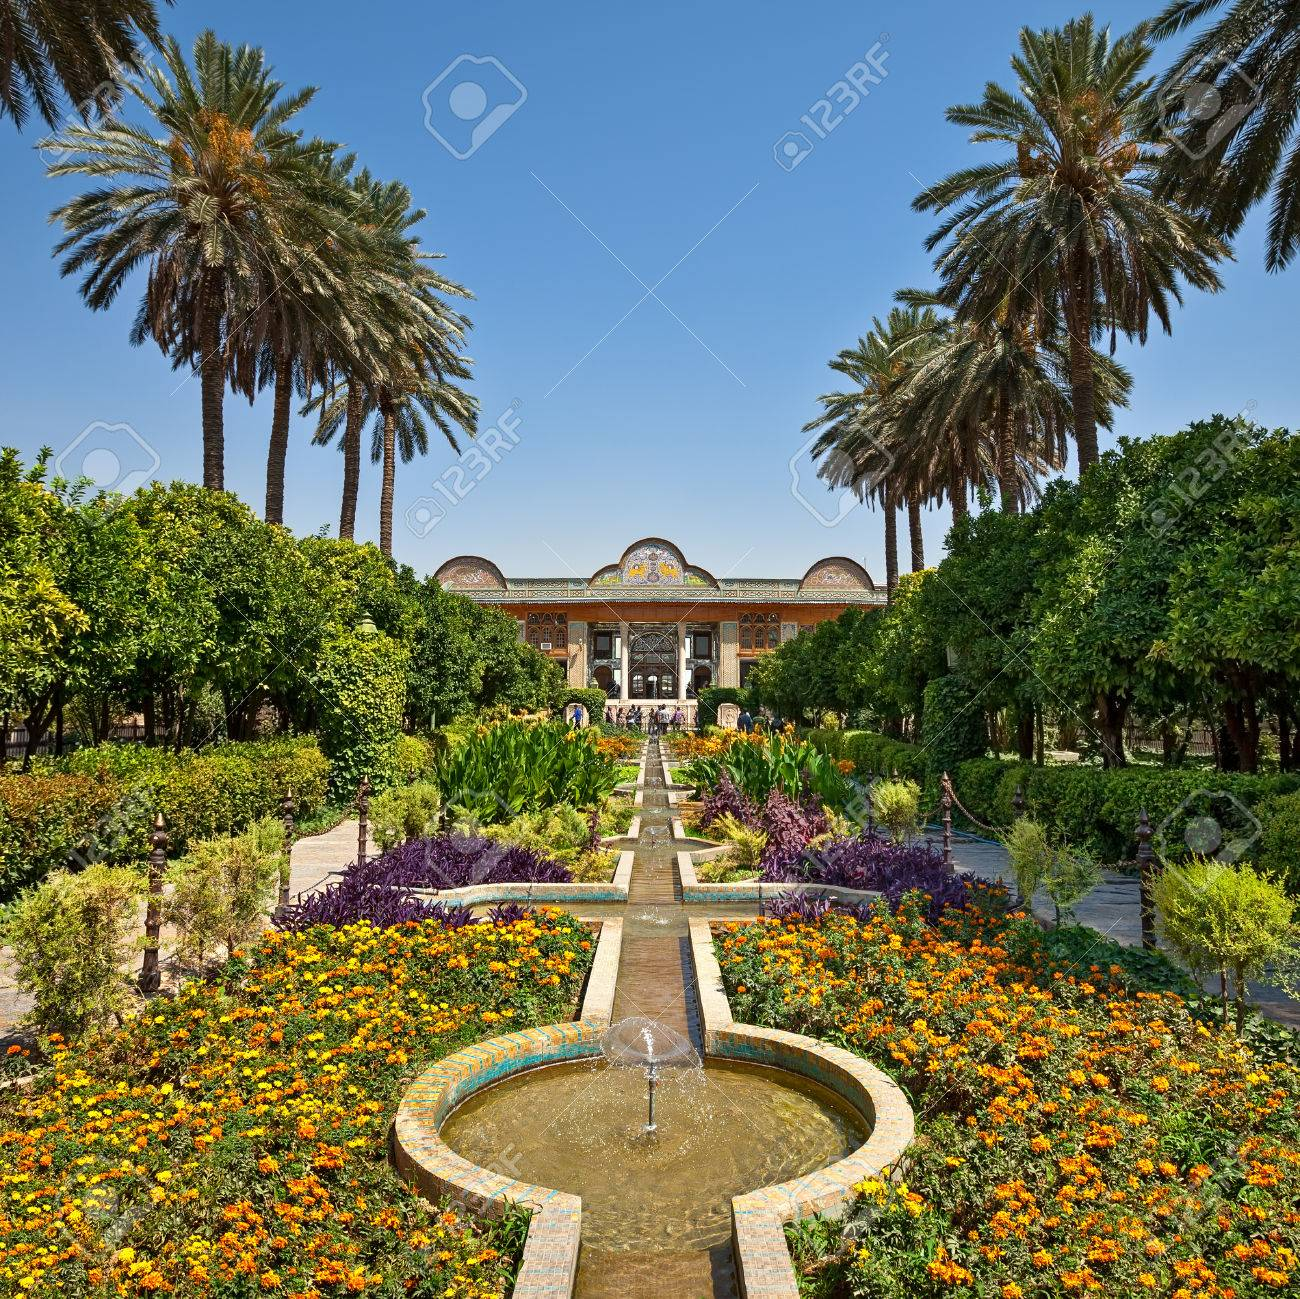 Beautiful Persian Garden Of Narenjestan Ghavam Or Qavam With Its Historic  Pavilion And Engineered System Of